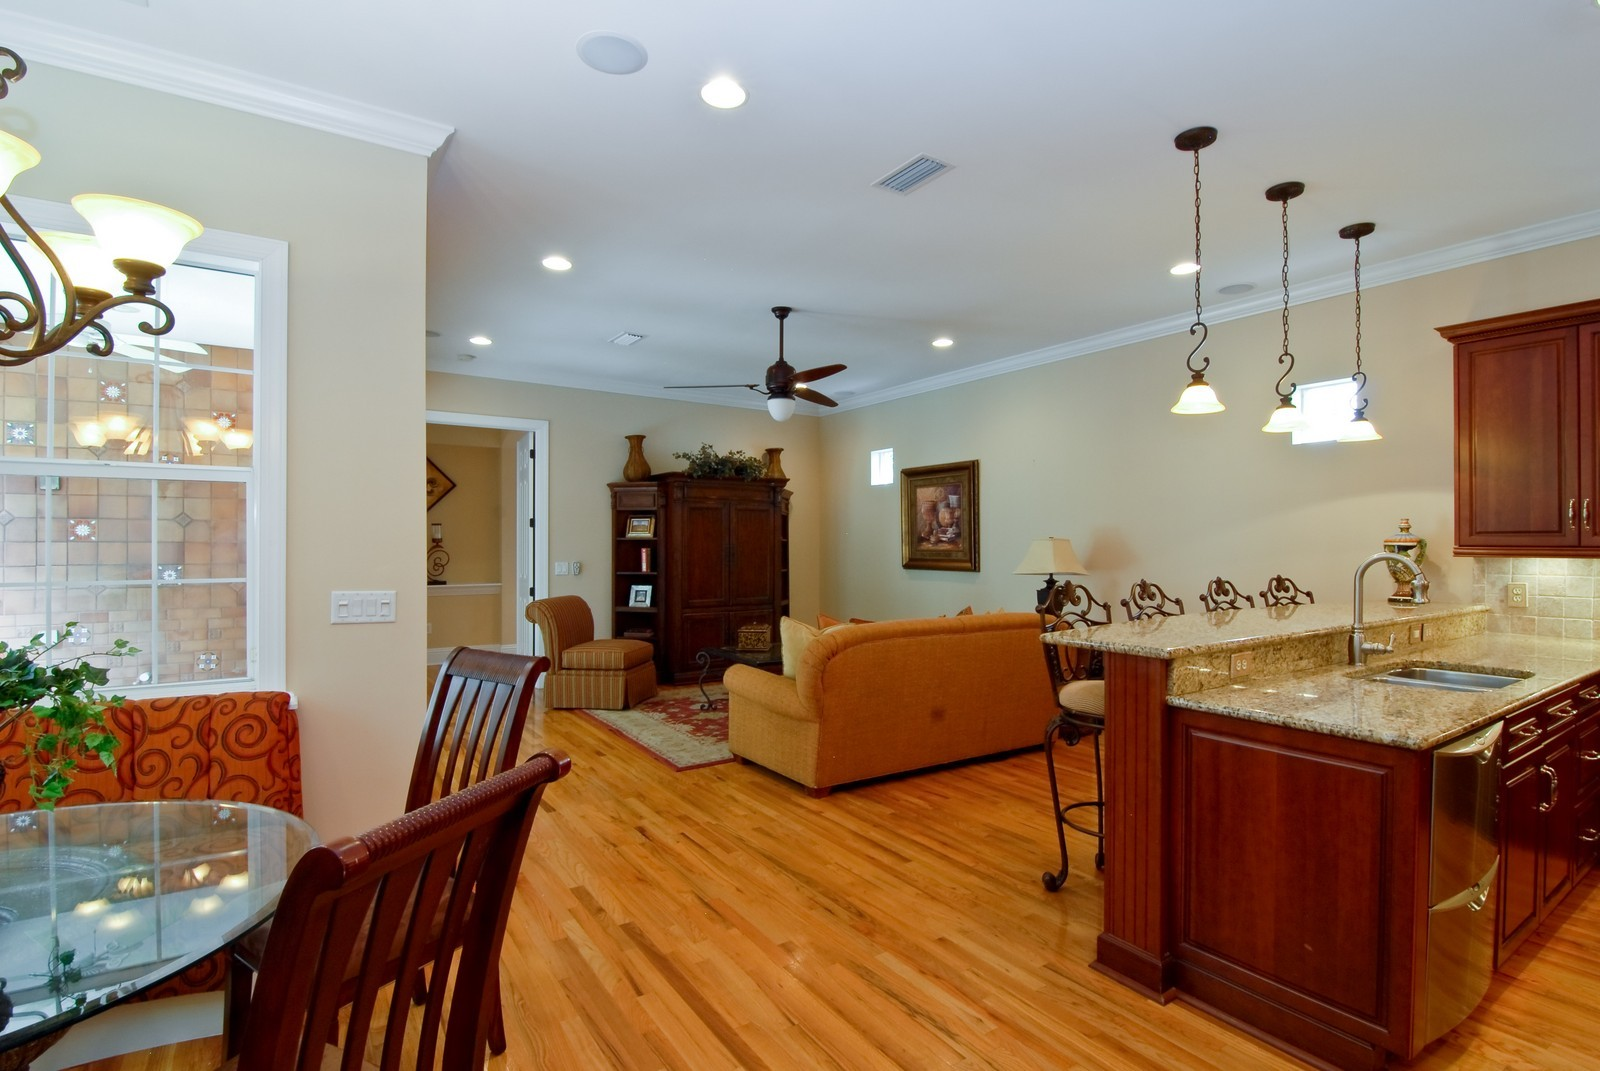 Real Estate Photography - 3107 Fountain Blvd, Tampa, FL, 33609 - Family Room / Kitchen